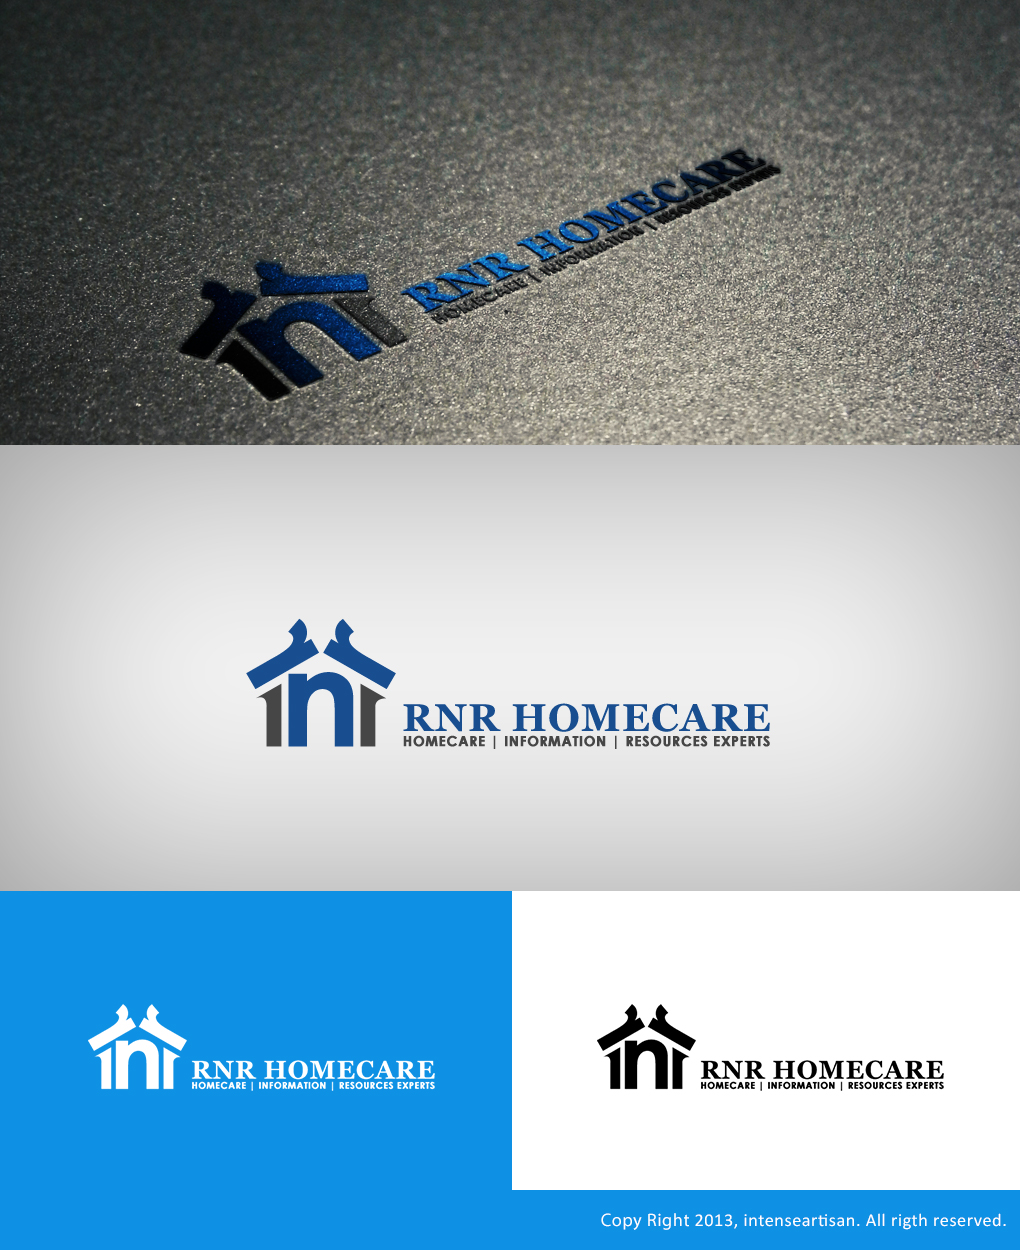 Logo Design by Virgilio Pineda III - Entry No. 148 in the Logo Design Contest Imaginative Logo Design for RNR HomeCare.